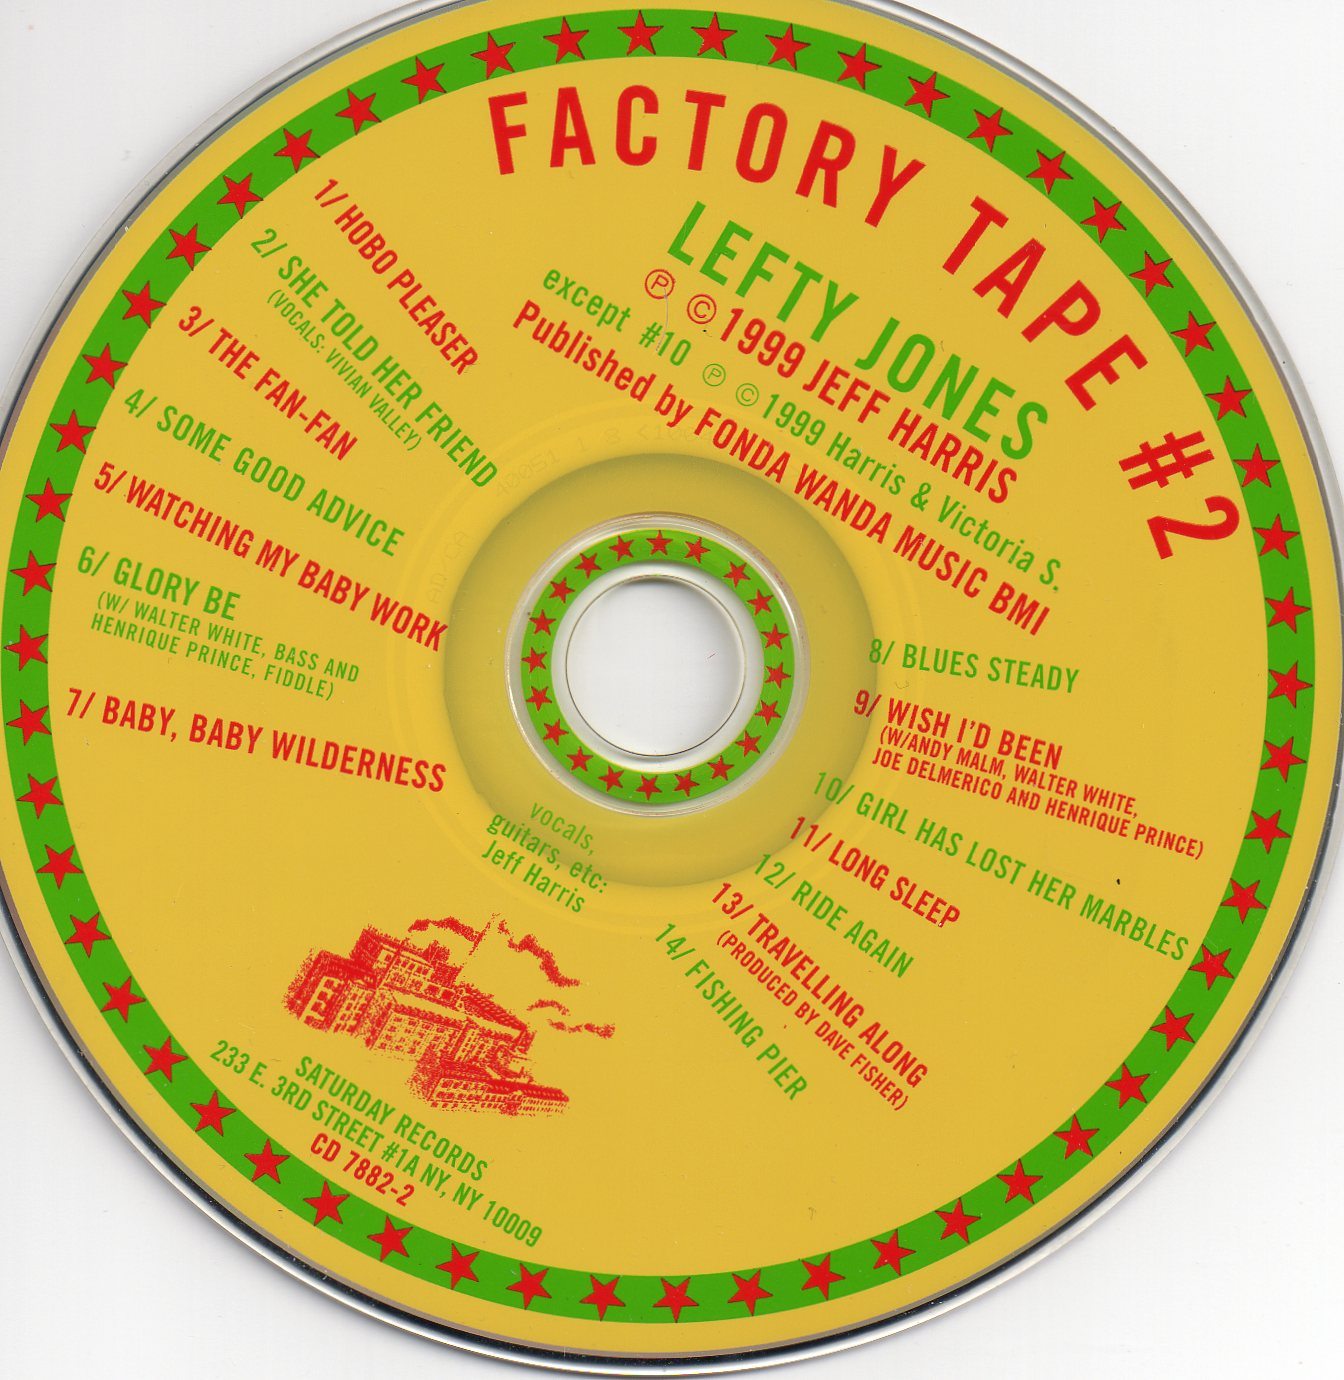 factorytape2mg022.jpg